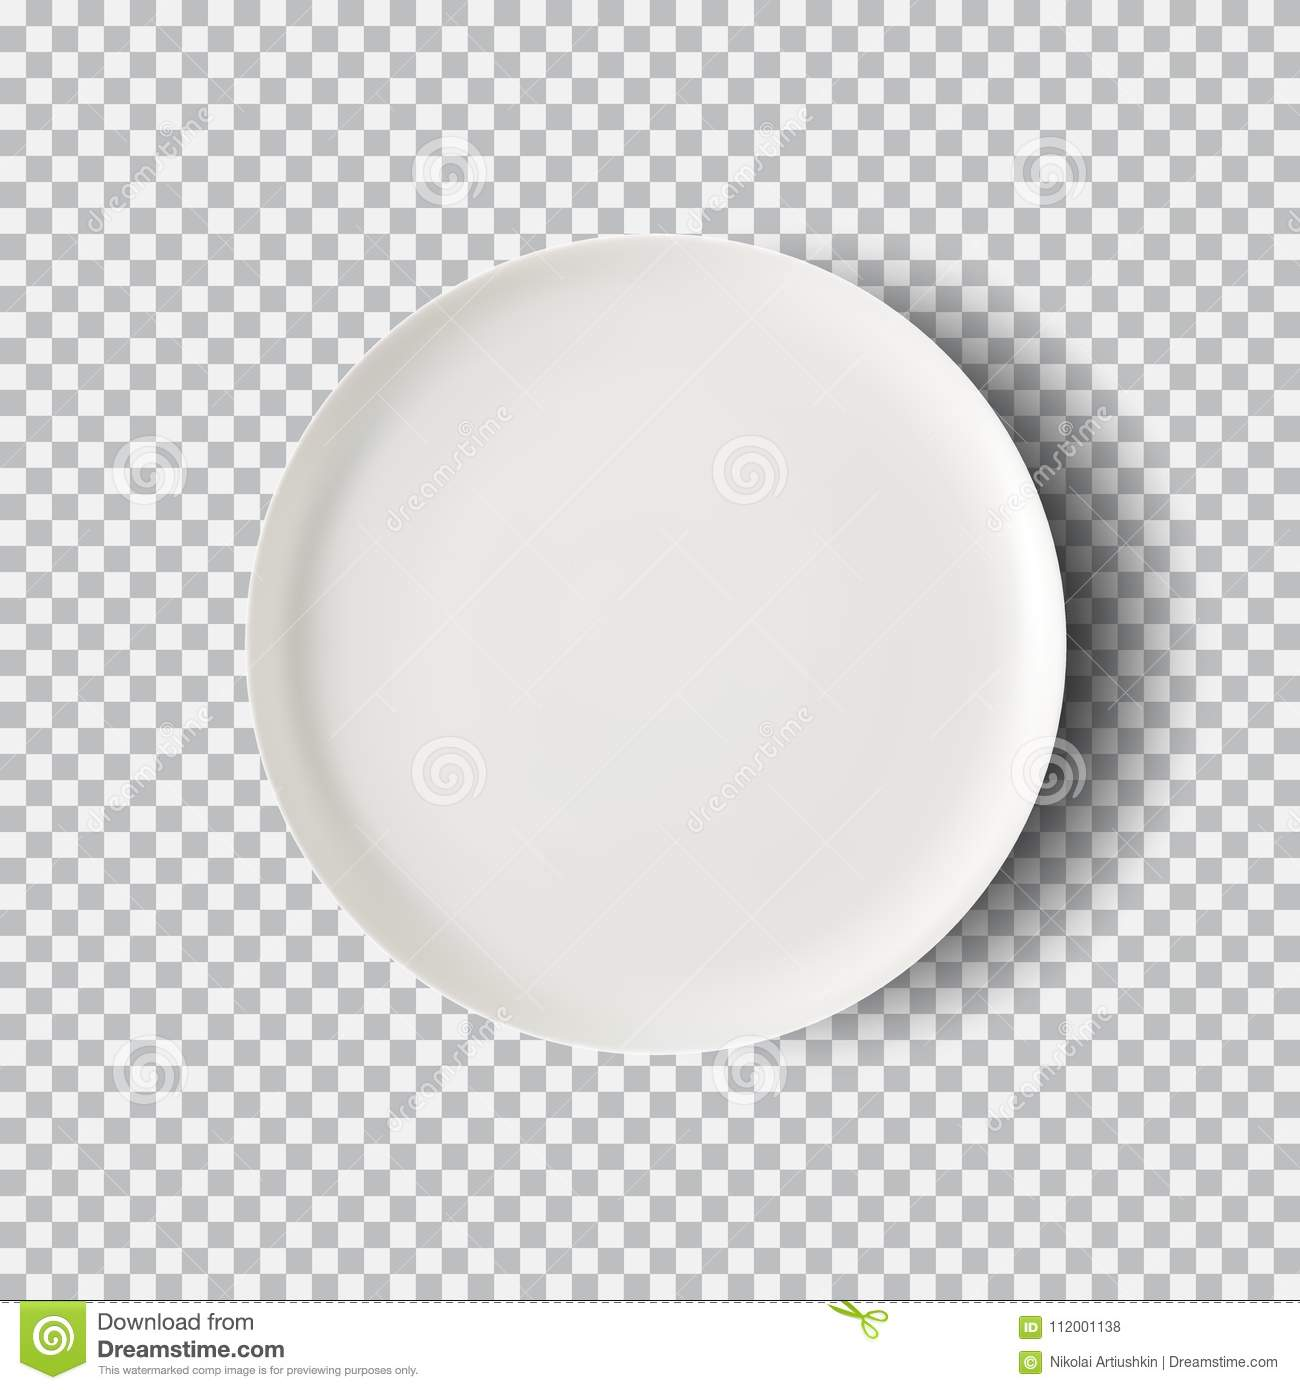 White Plate On Transparent Background Stock Vector - Illustration of ...